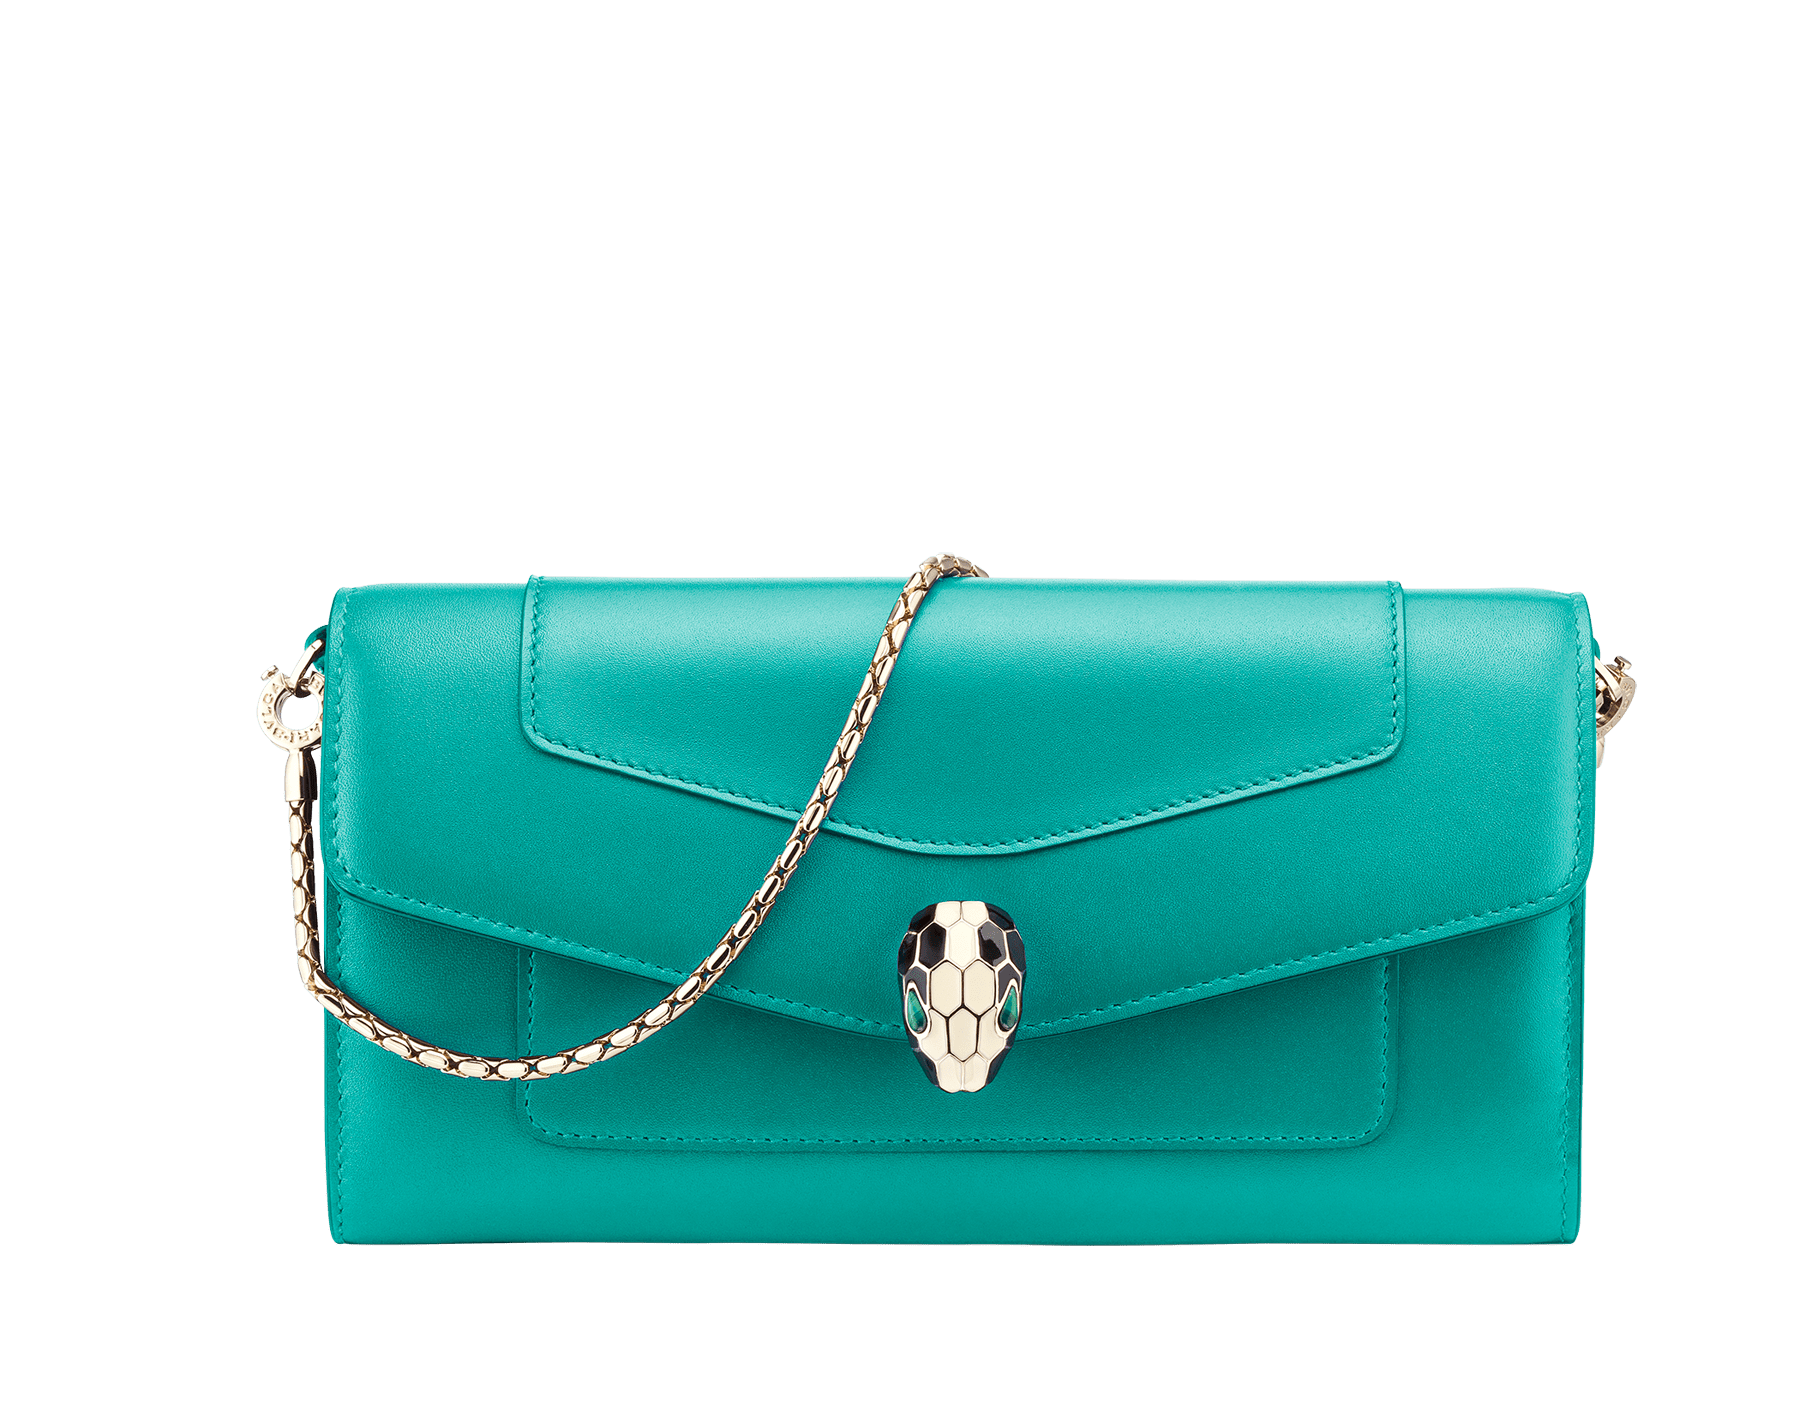 Serpenti Forever wallet pouch in tropical tourquoise and deep jade calf leather. Iconic snakehead charm in black and white enamel, with green malachite eyes. 288023 image 1